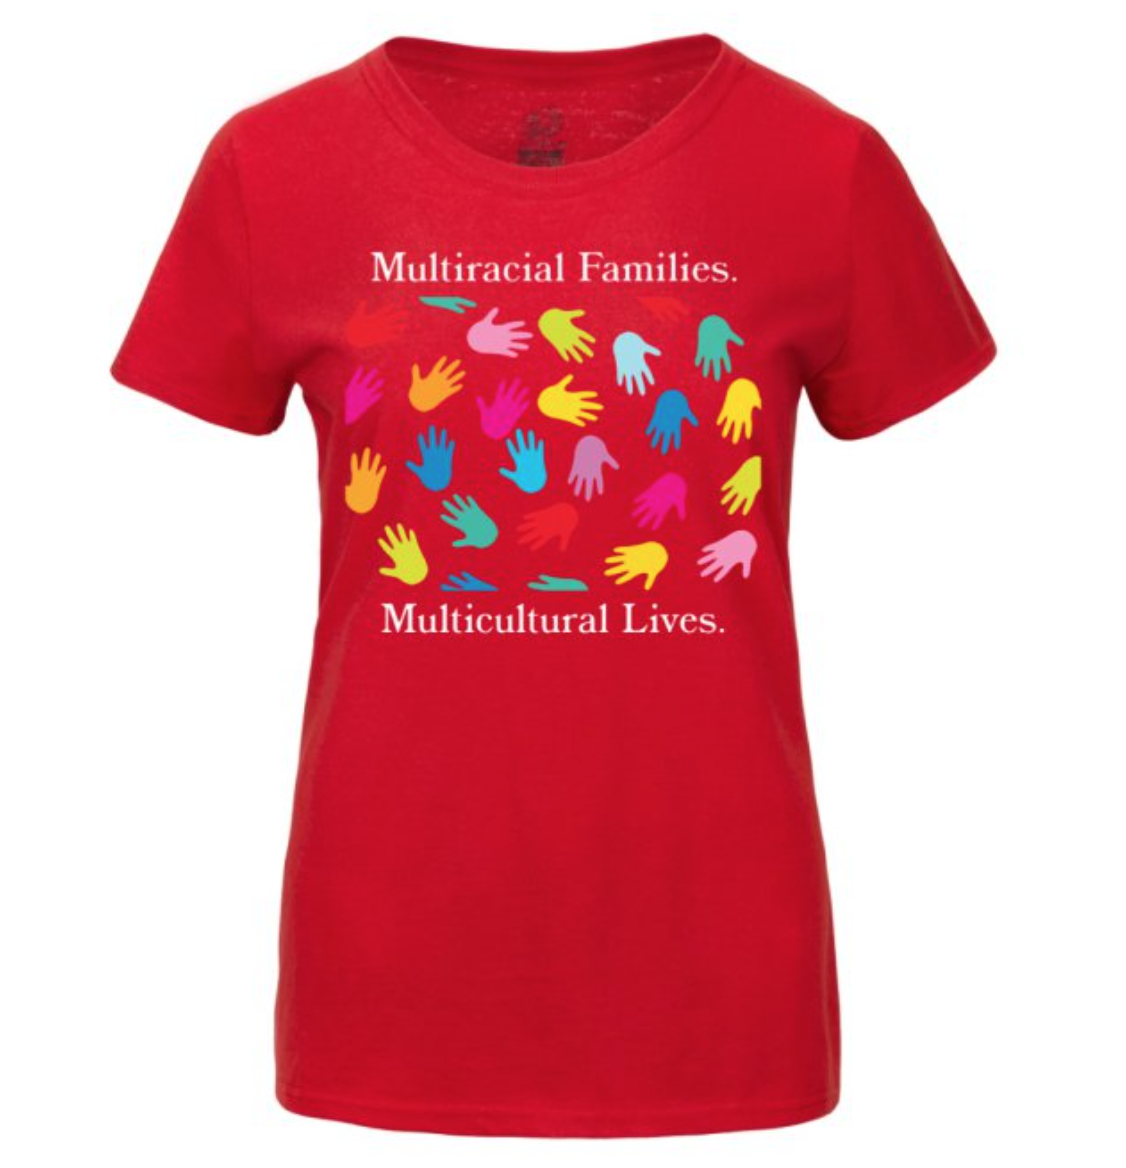 Multicultural Lives Hands Women's Basic T-Shirt Medium 00005